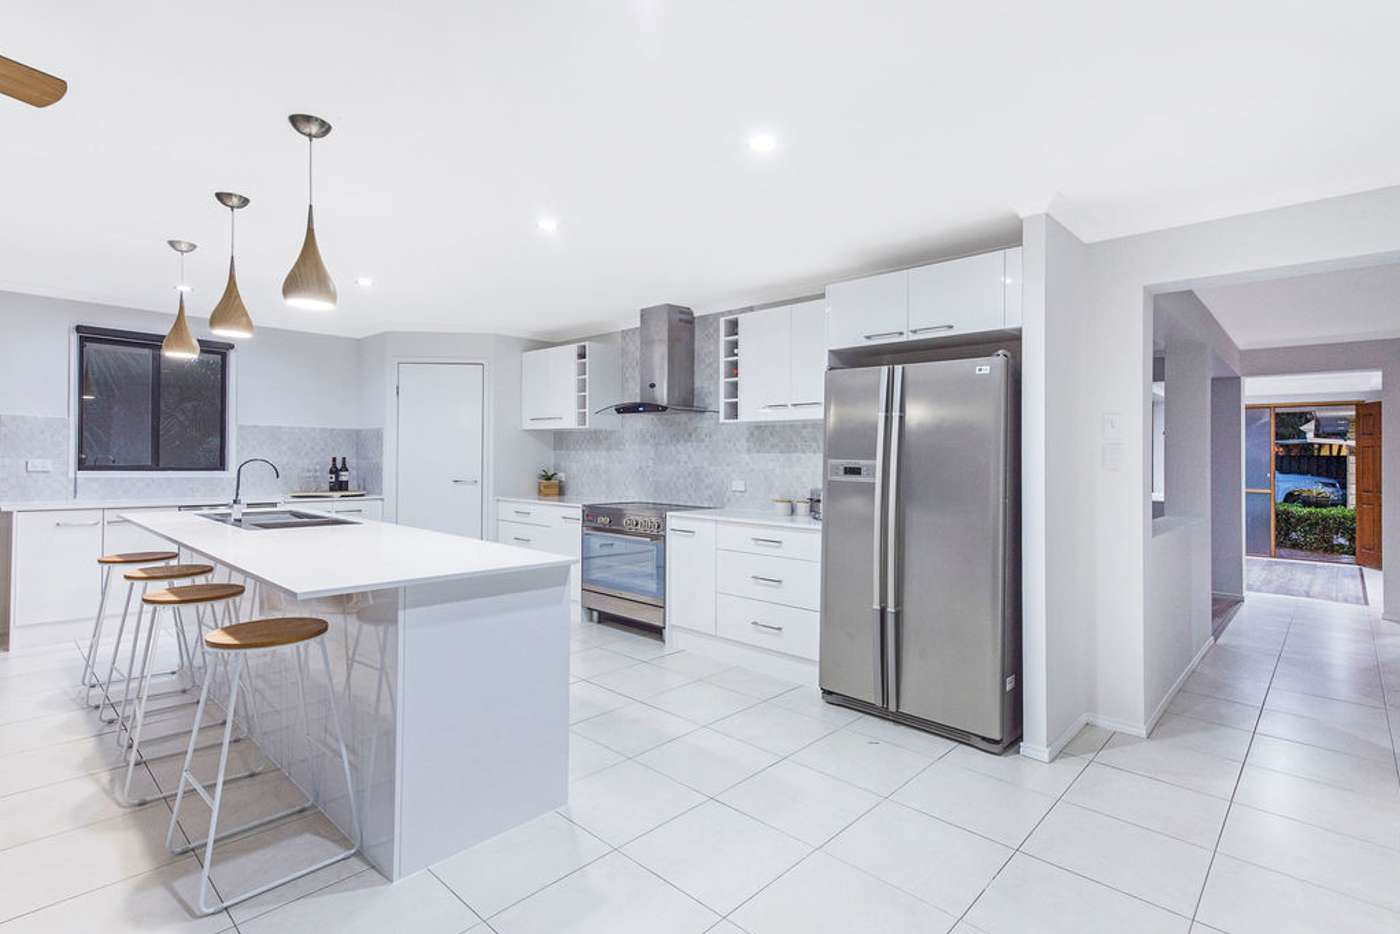 Sixth view of Homely house listing, 2 Burley Griffin Drive, Maudsland QLD 4210